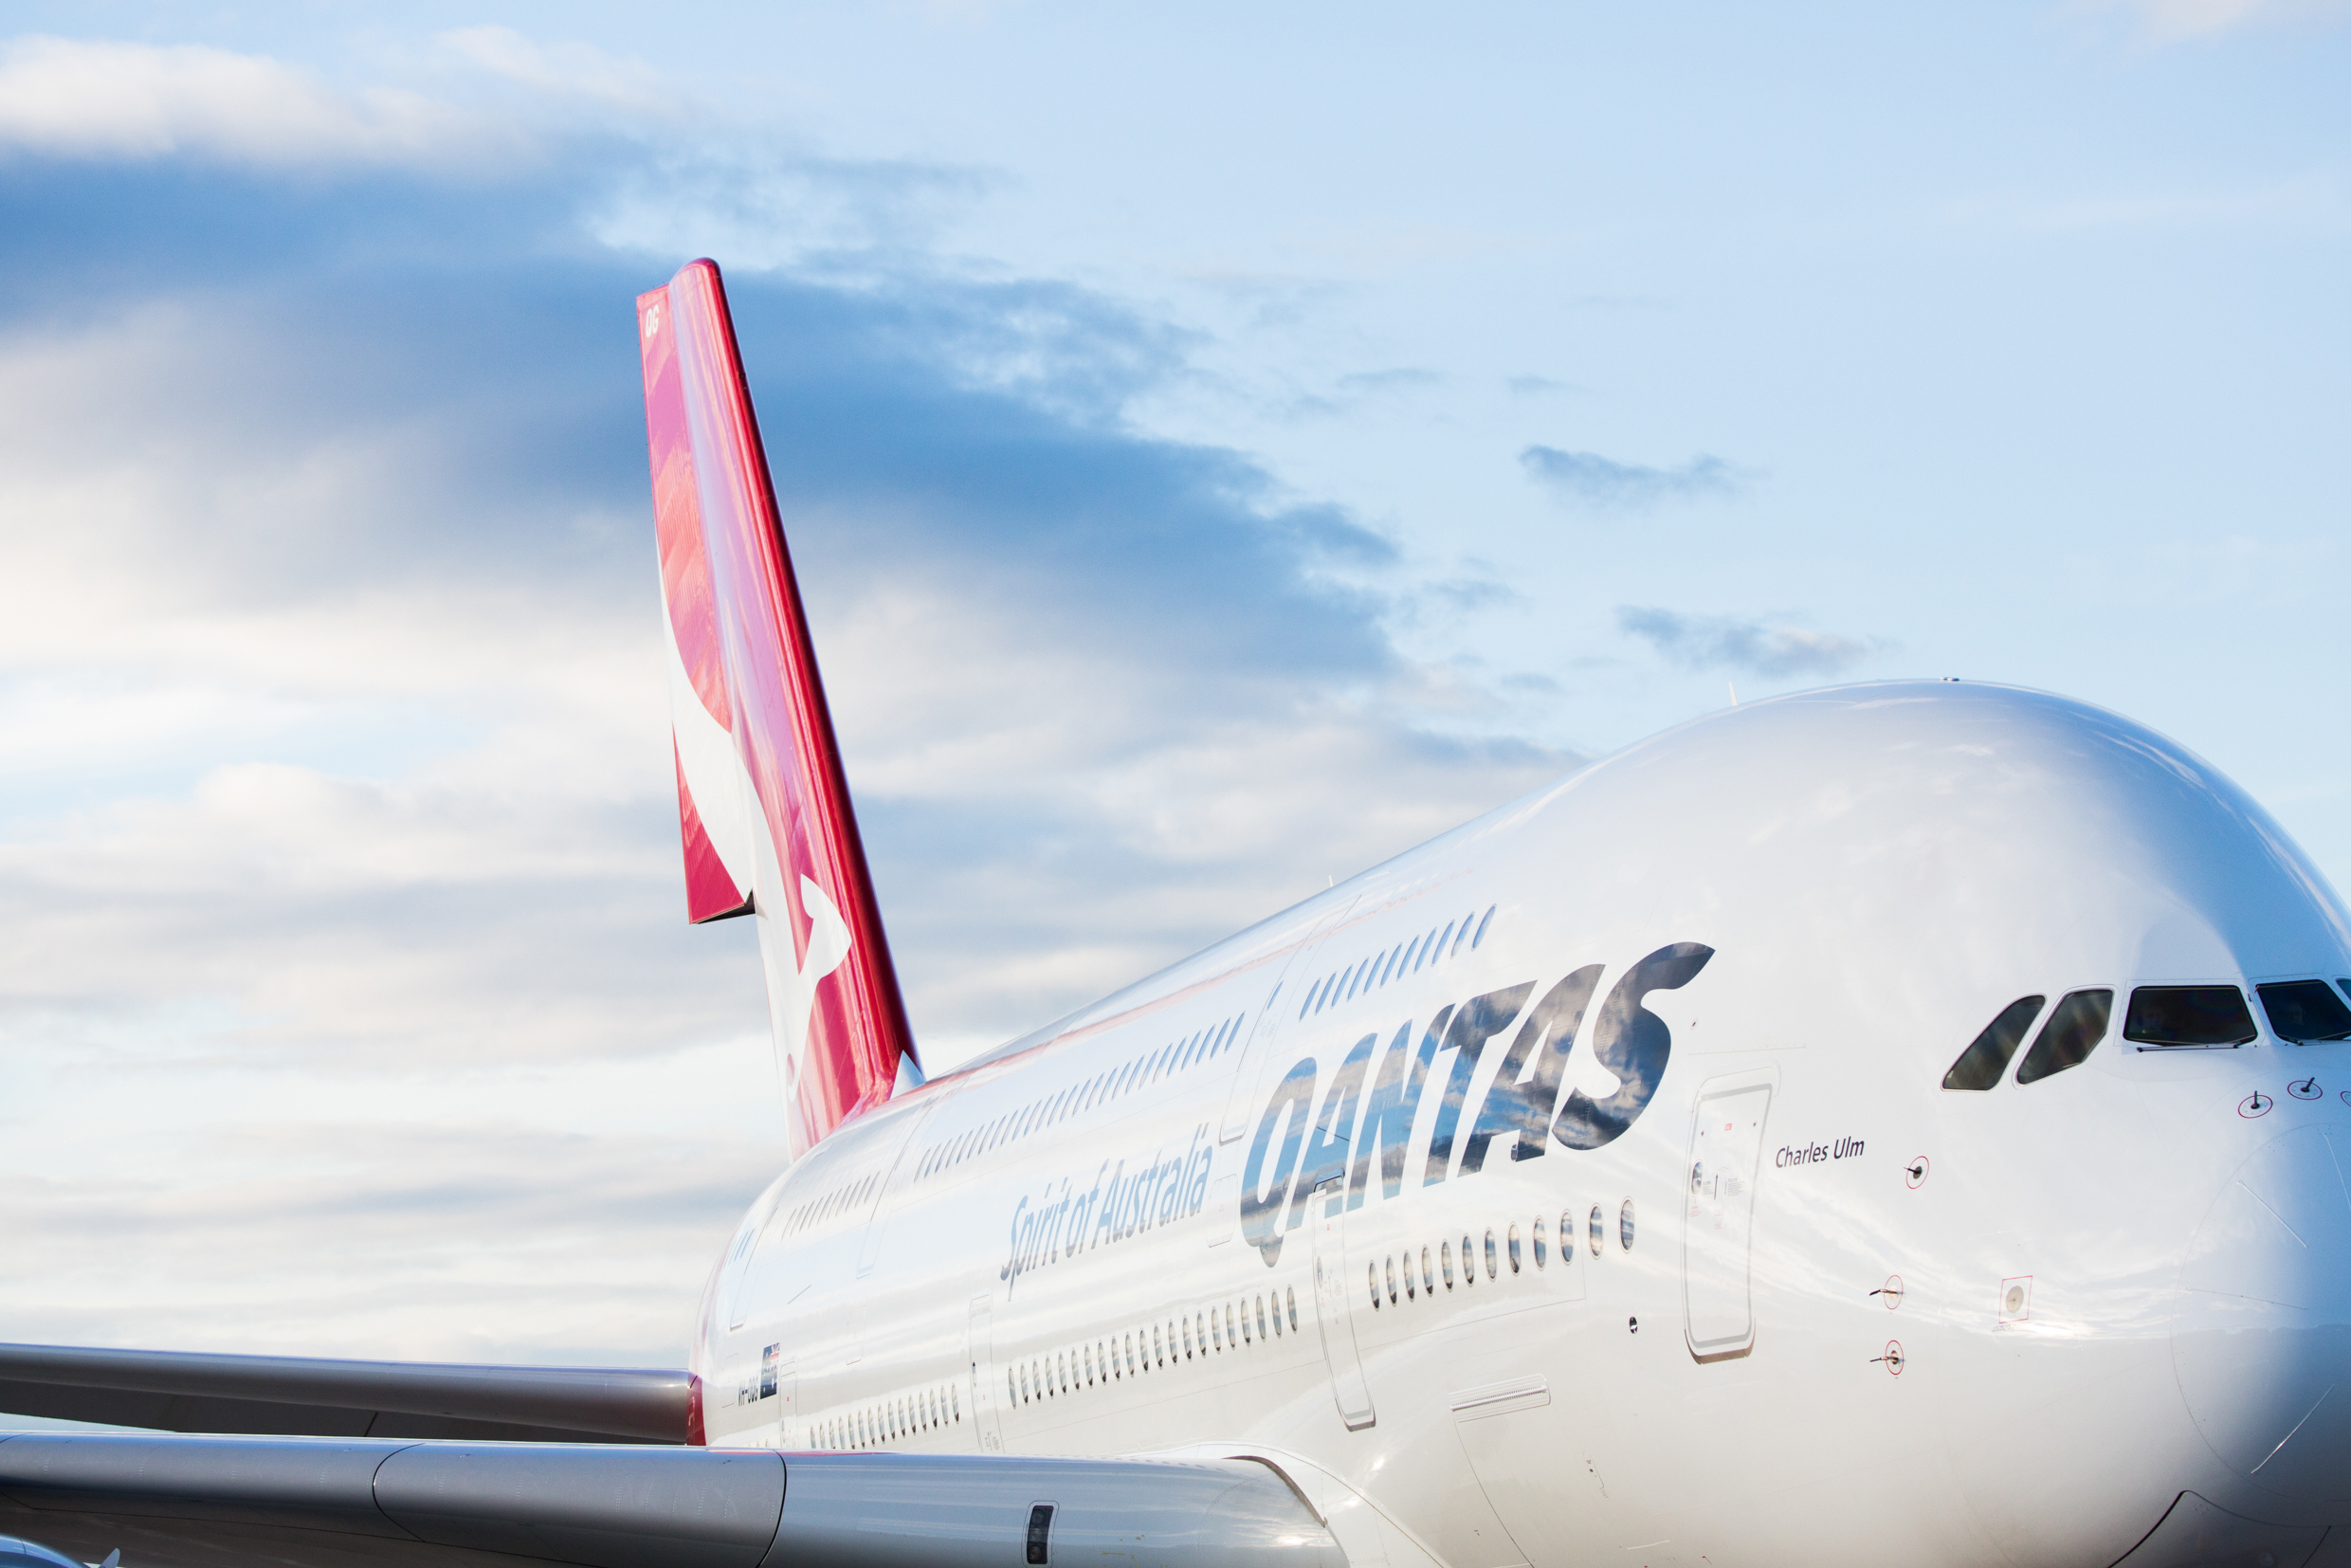 20% bonus when you transfer DBS Points to Qantas Frequent Flyer